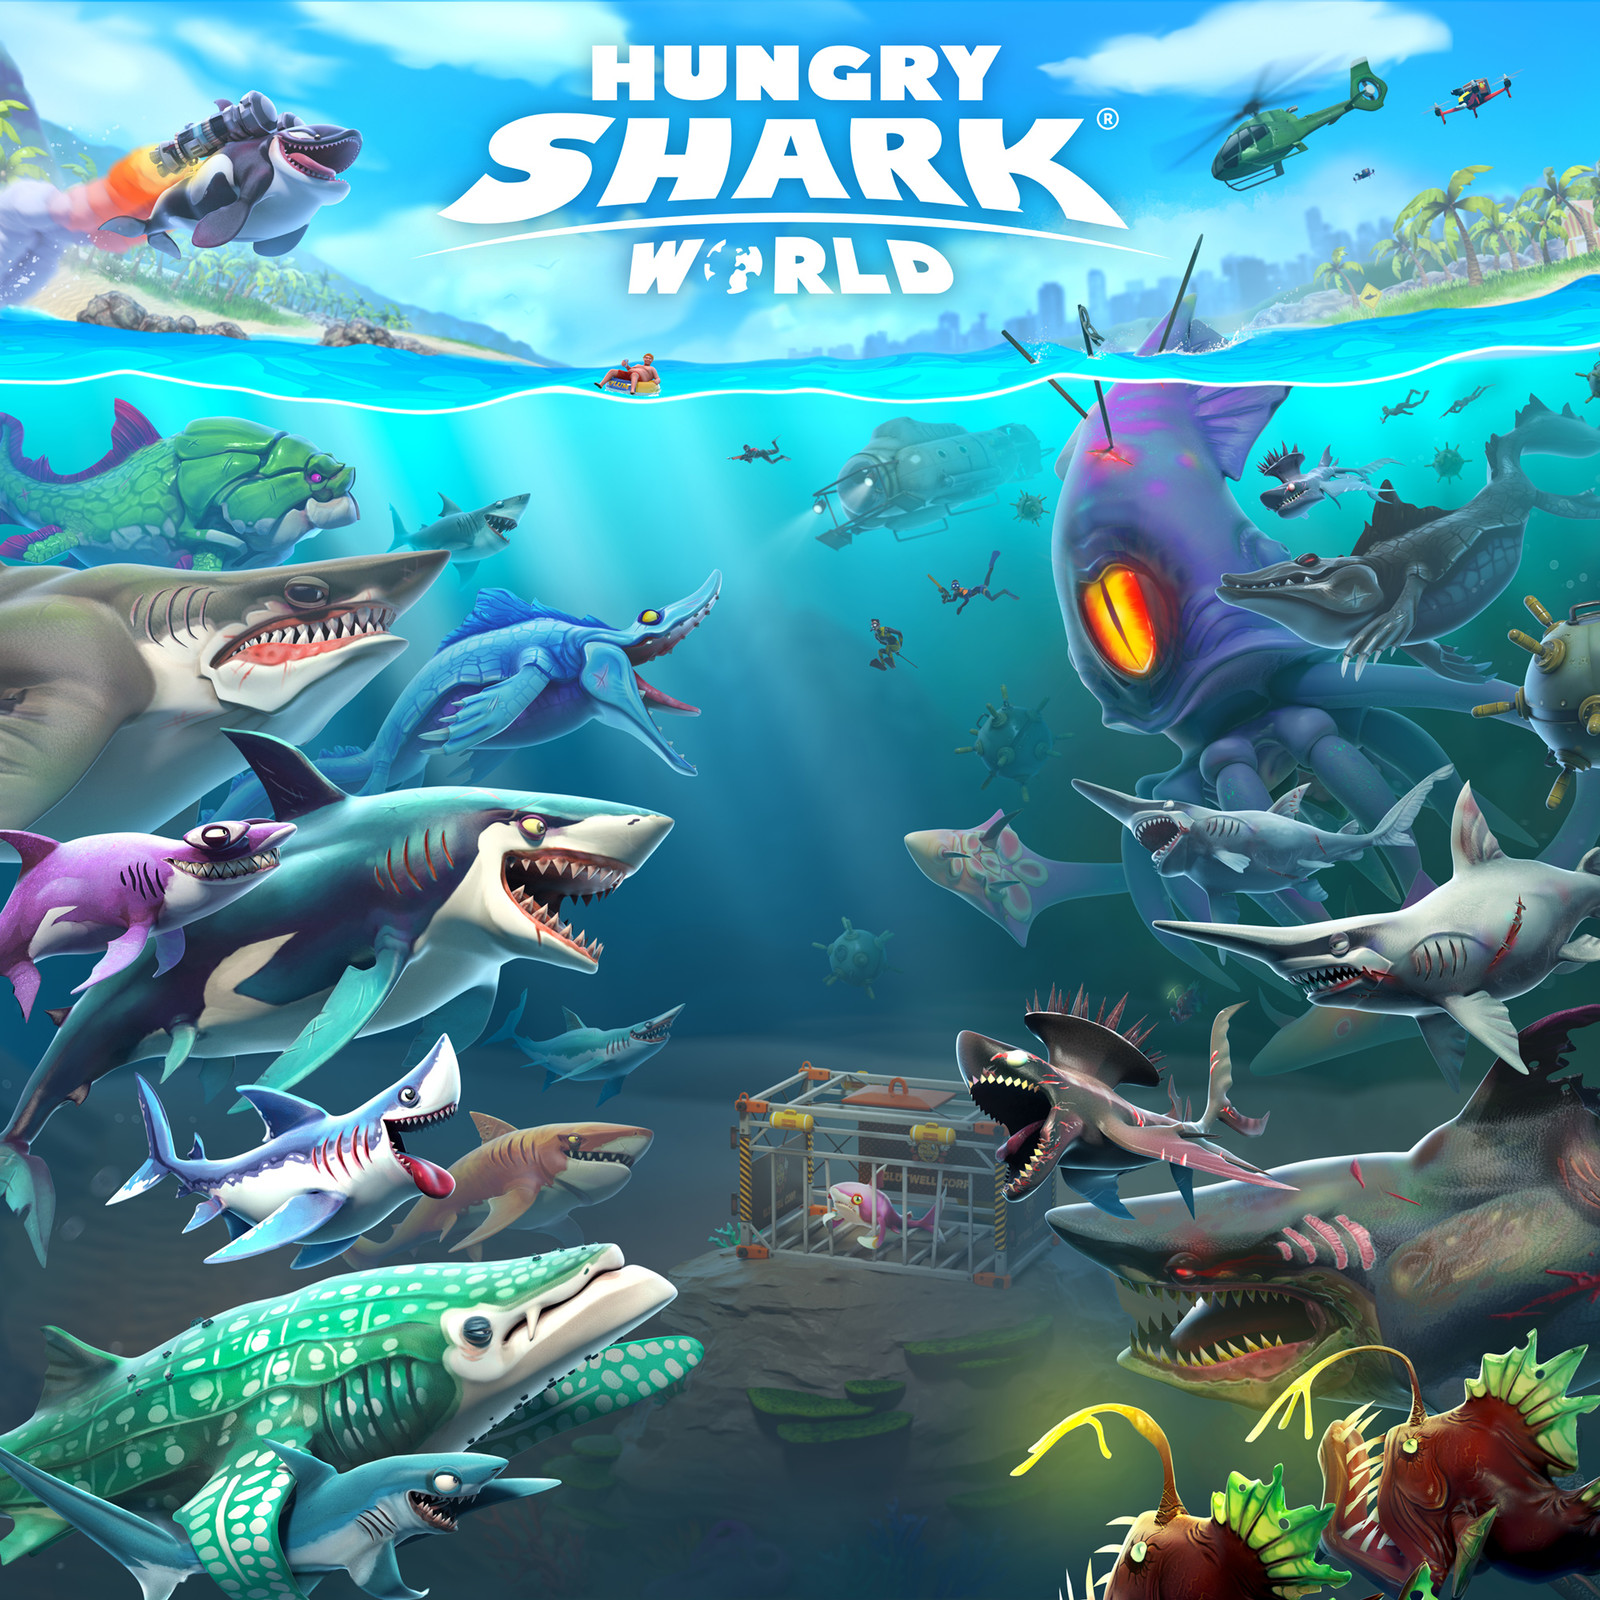 Hungry Shark World Keyart